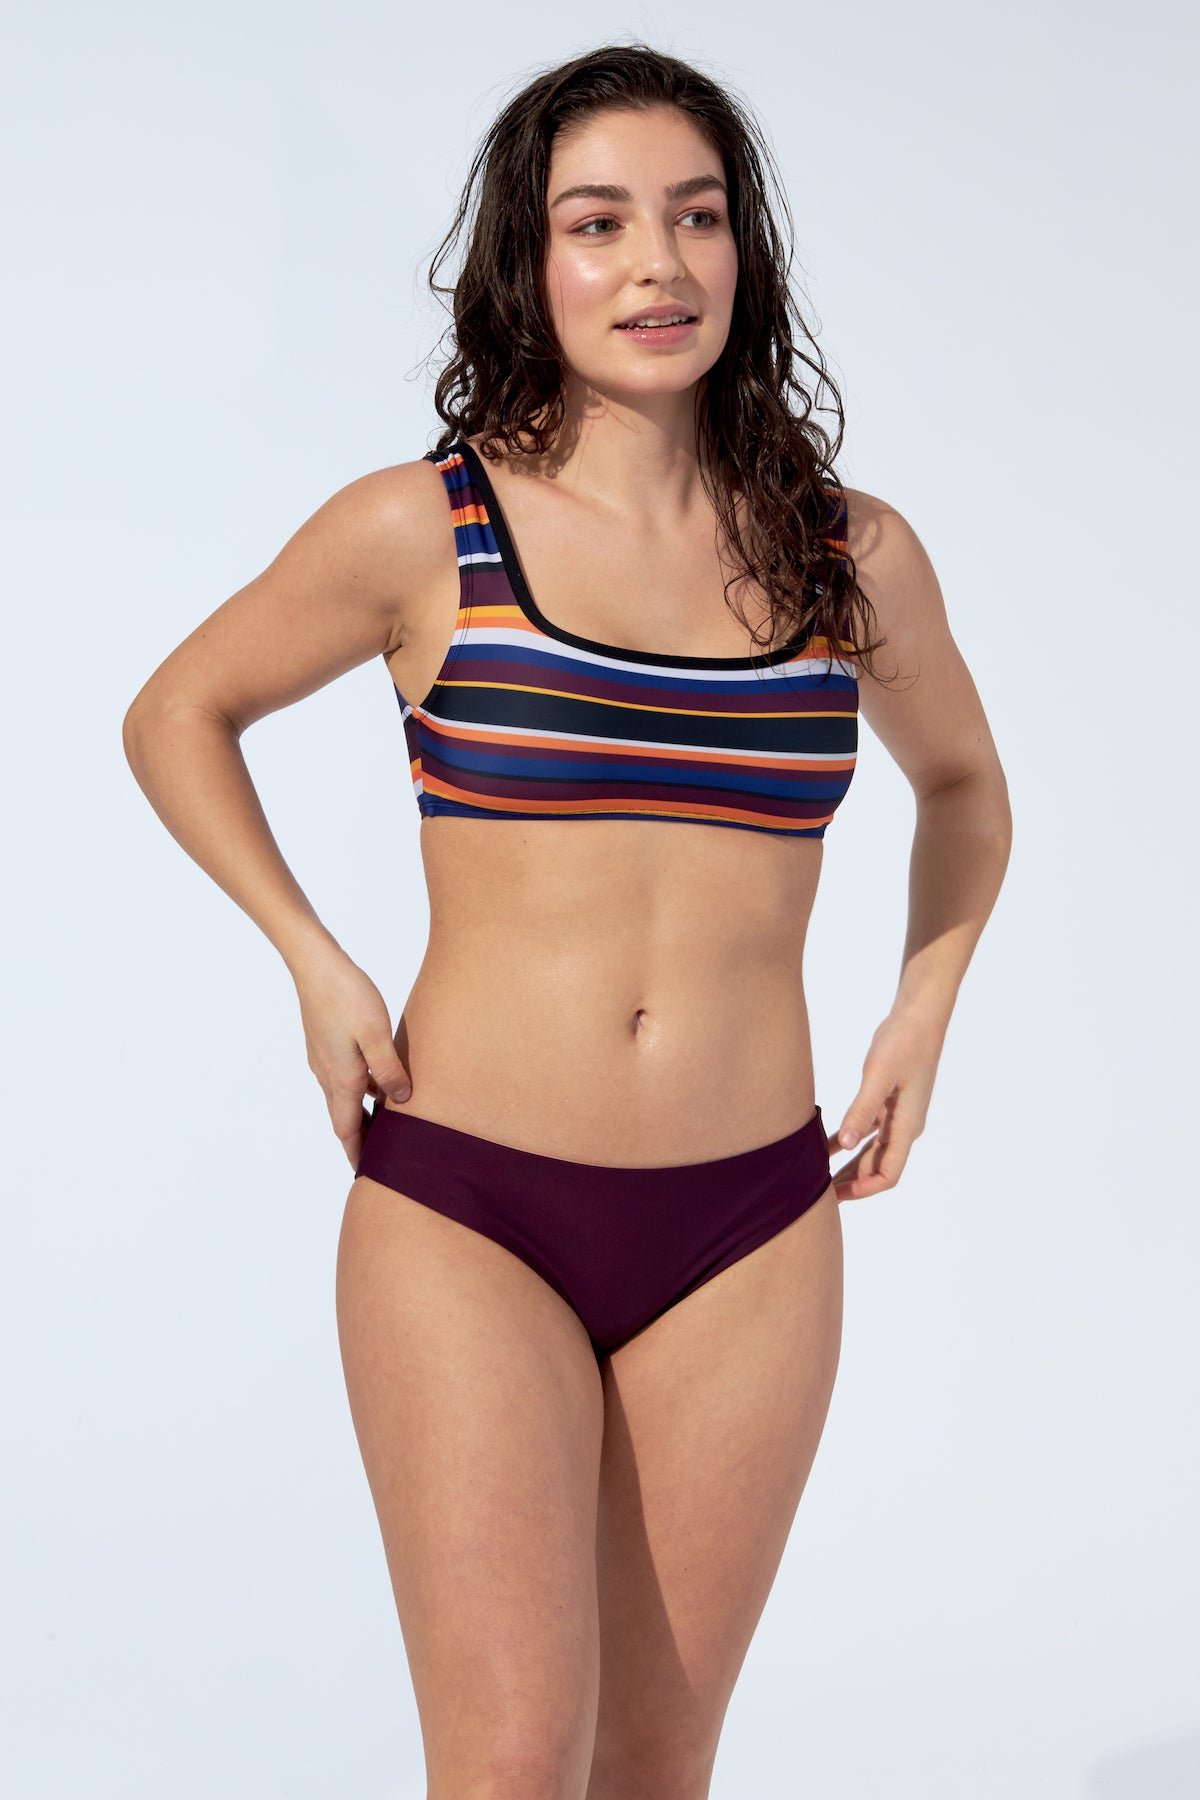 Women wearing striped bikini top and reversible bottom